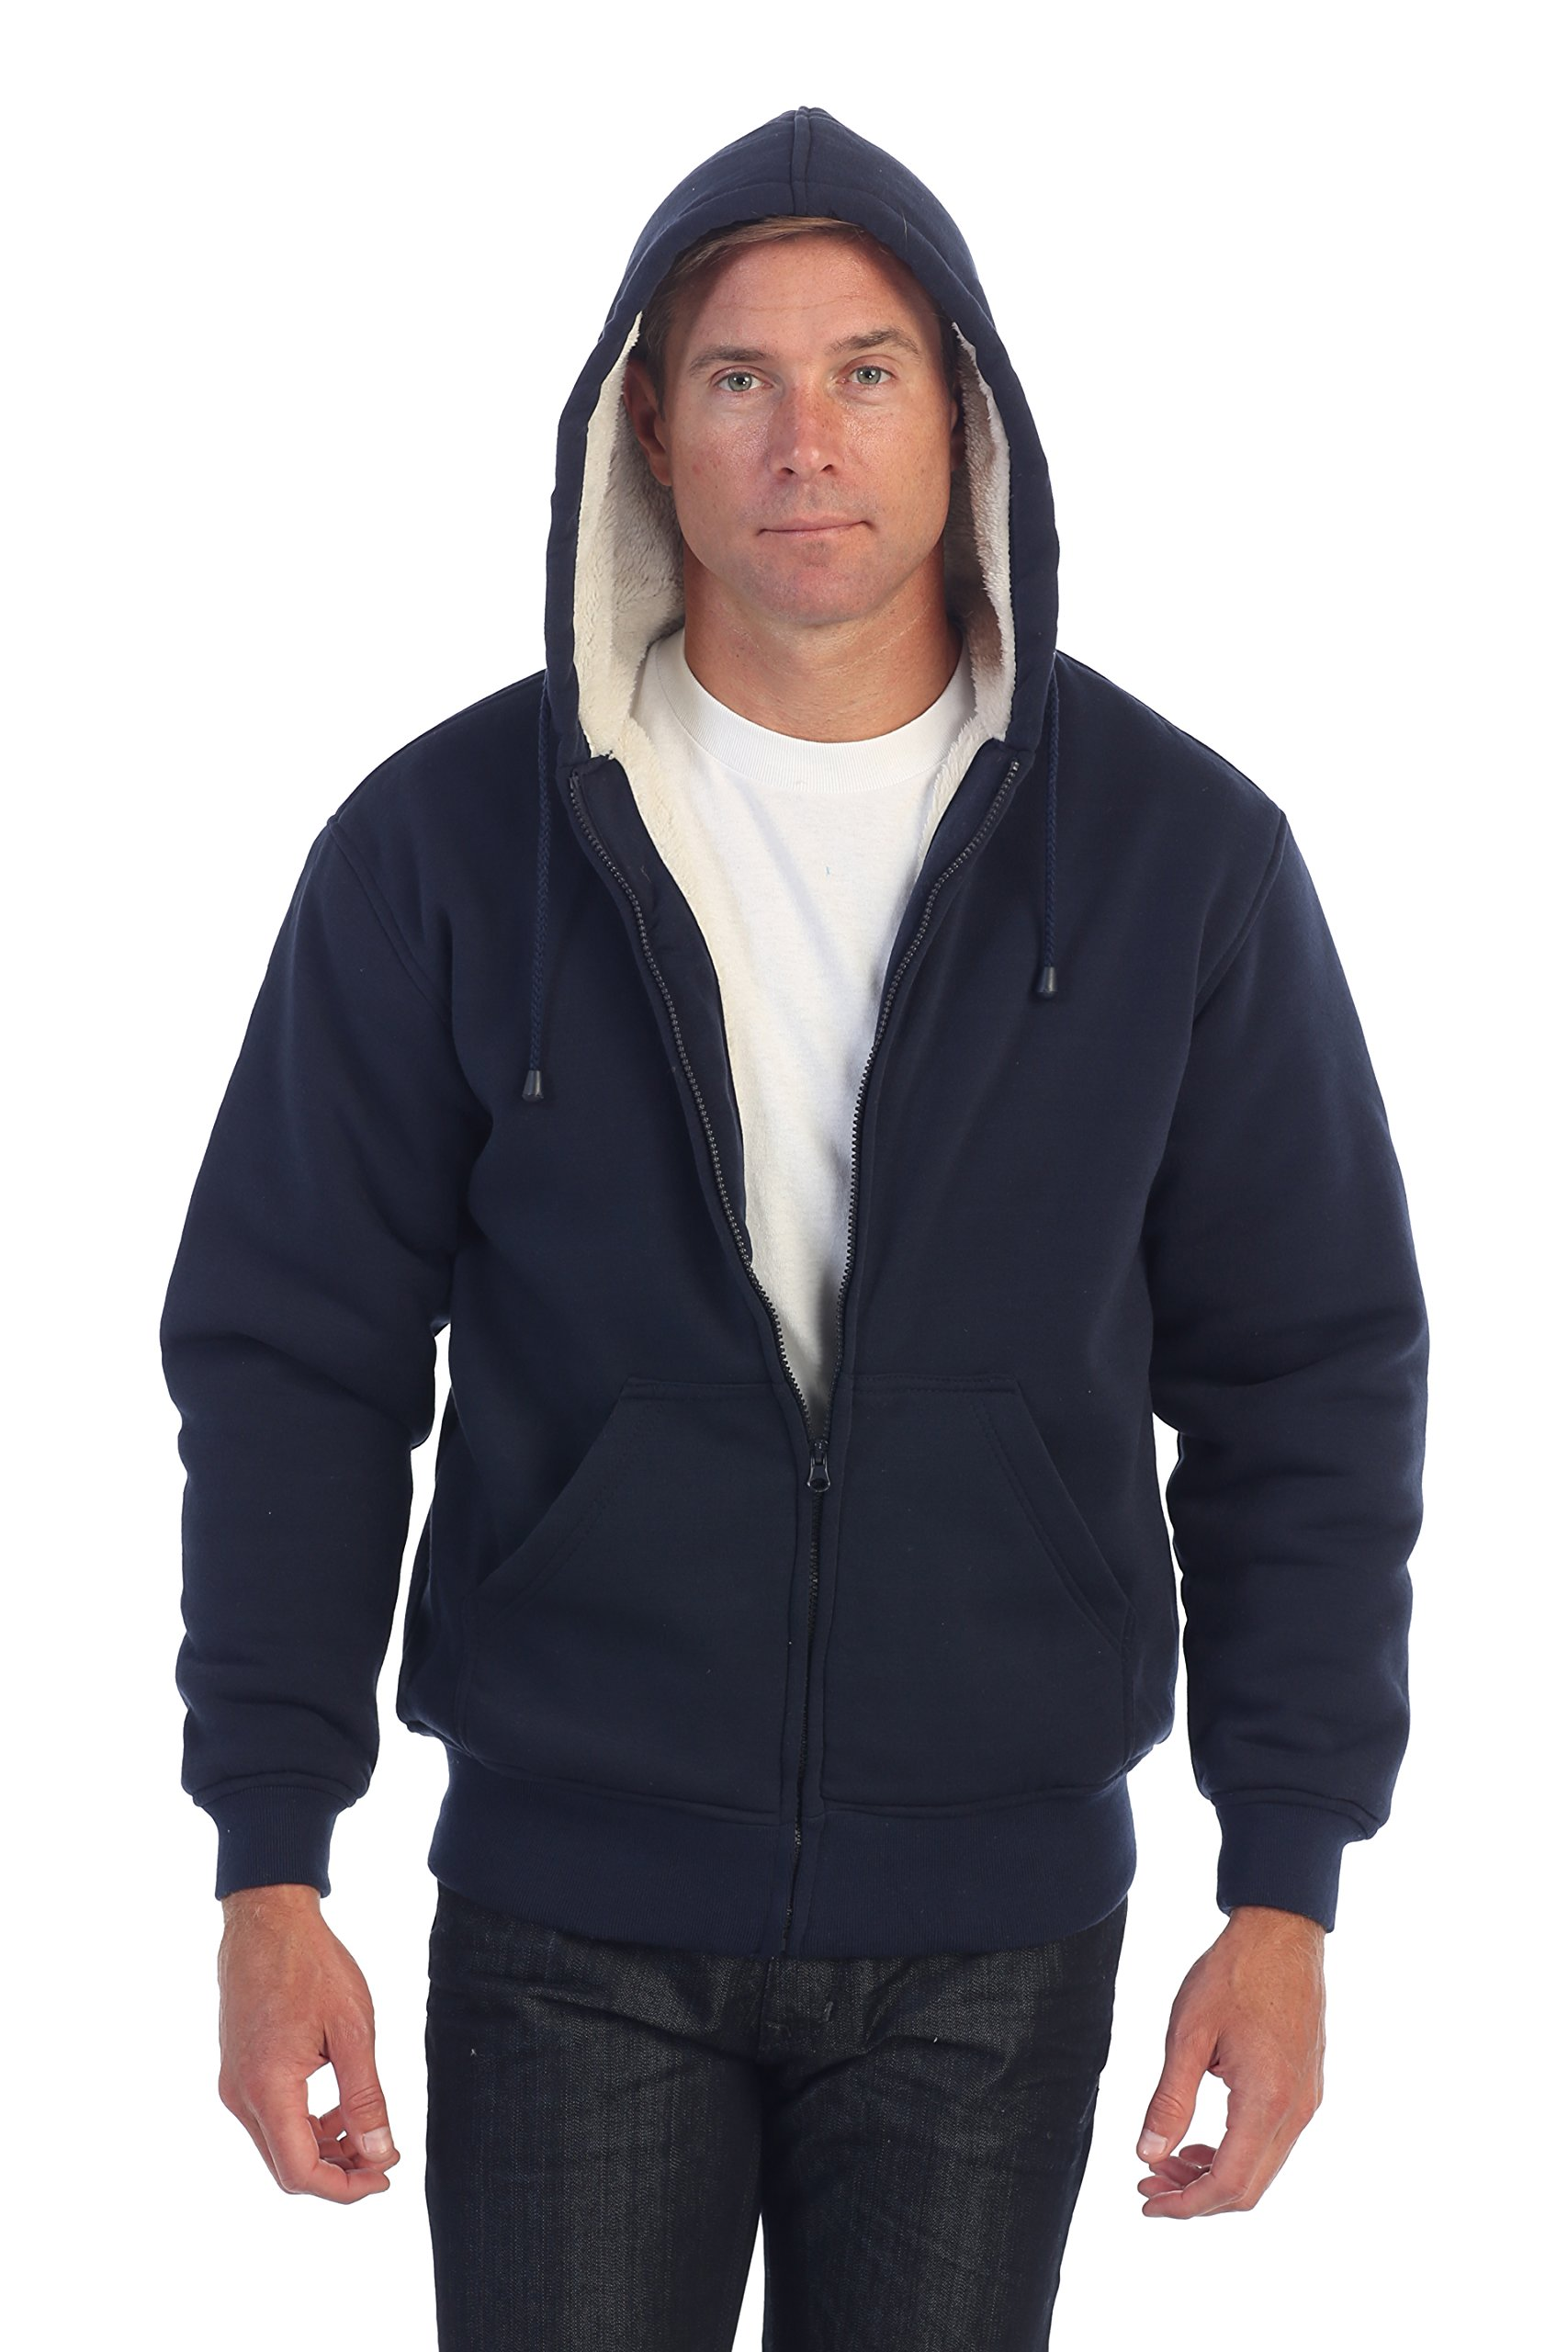 Gioberti Mens Sherpa Lined Pull Zip Fleece Hoodie Jacket, Navy, X Large by Gioberti